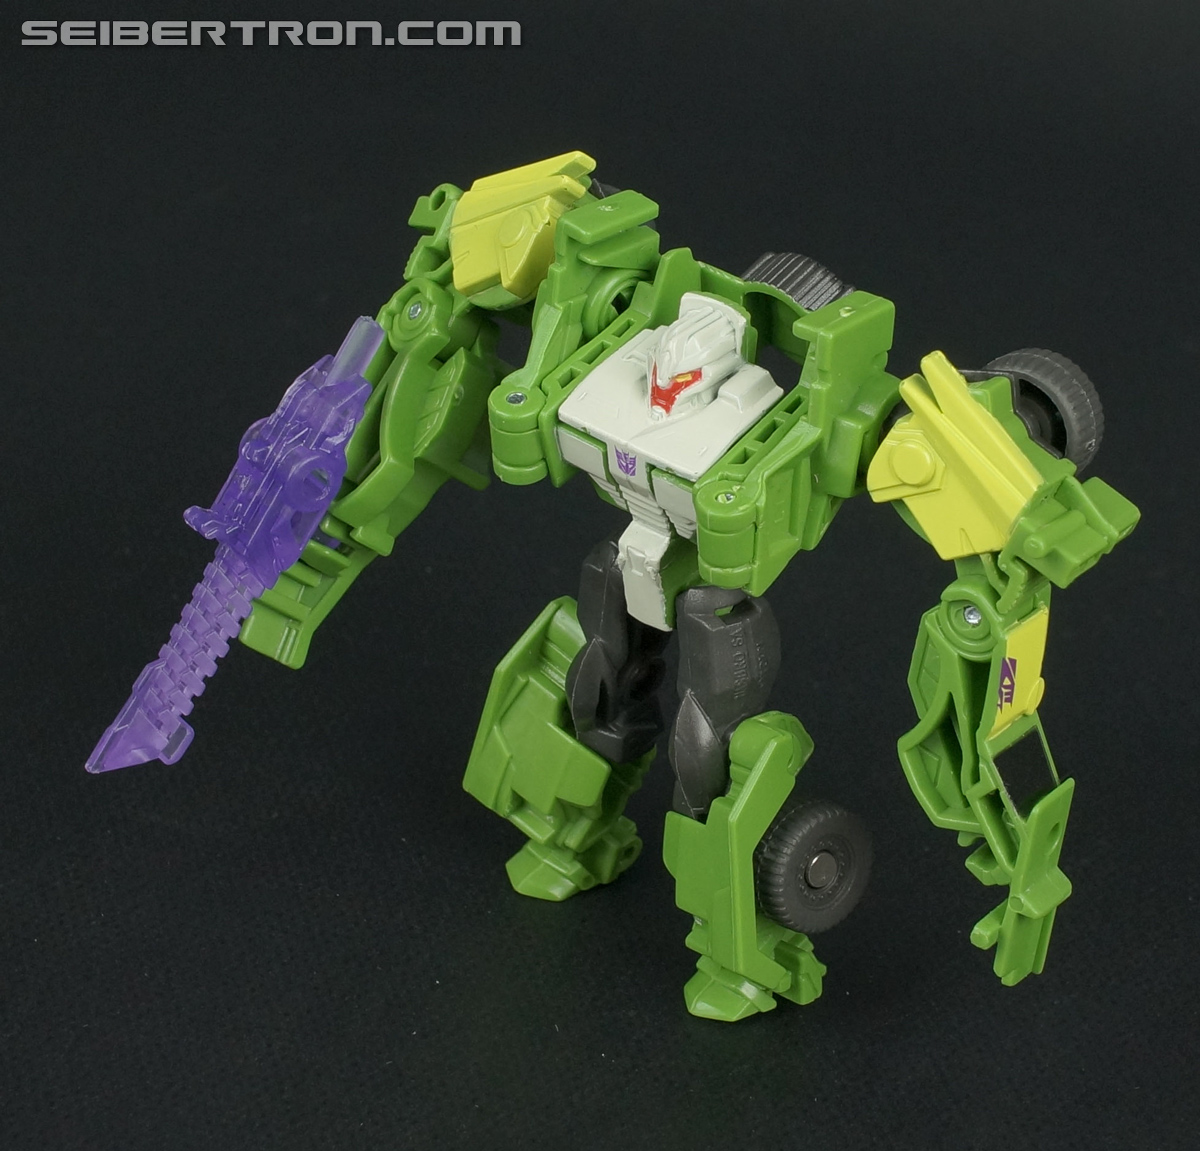 Transformers Prime Beast Hunters Cyberverse Breakdown (Apex Hunter Armor) (Image #56 of 96)